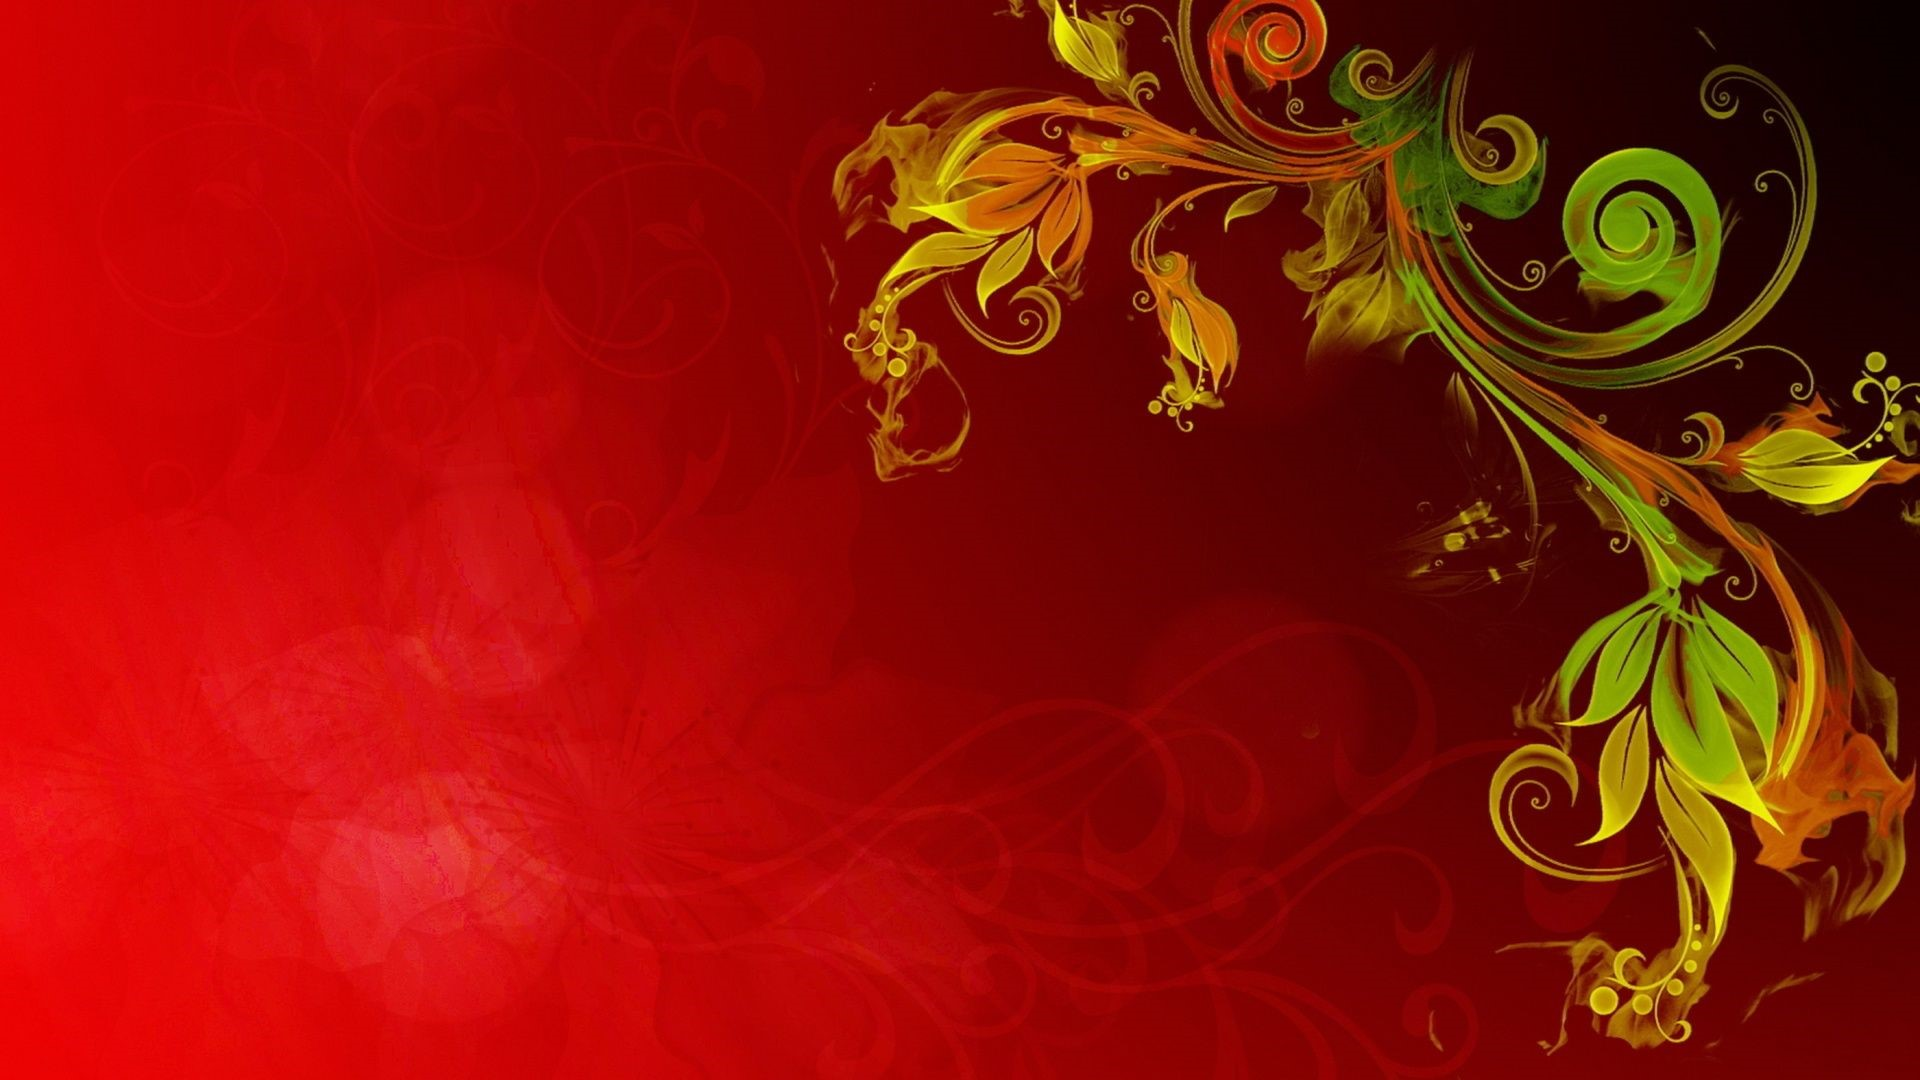 Abstract Floral UHD Wallpapers